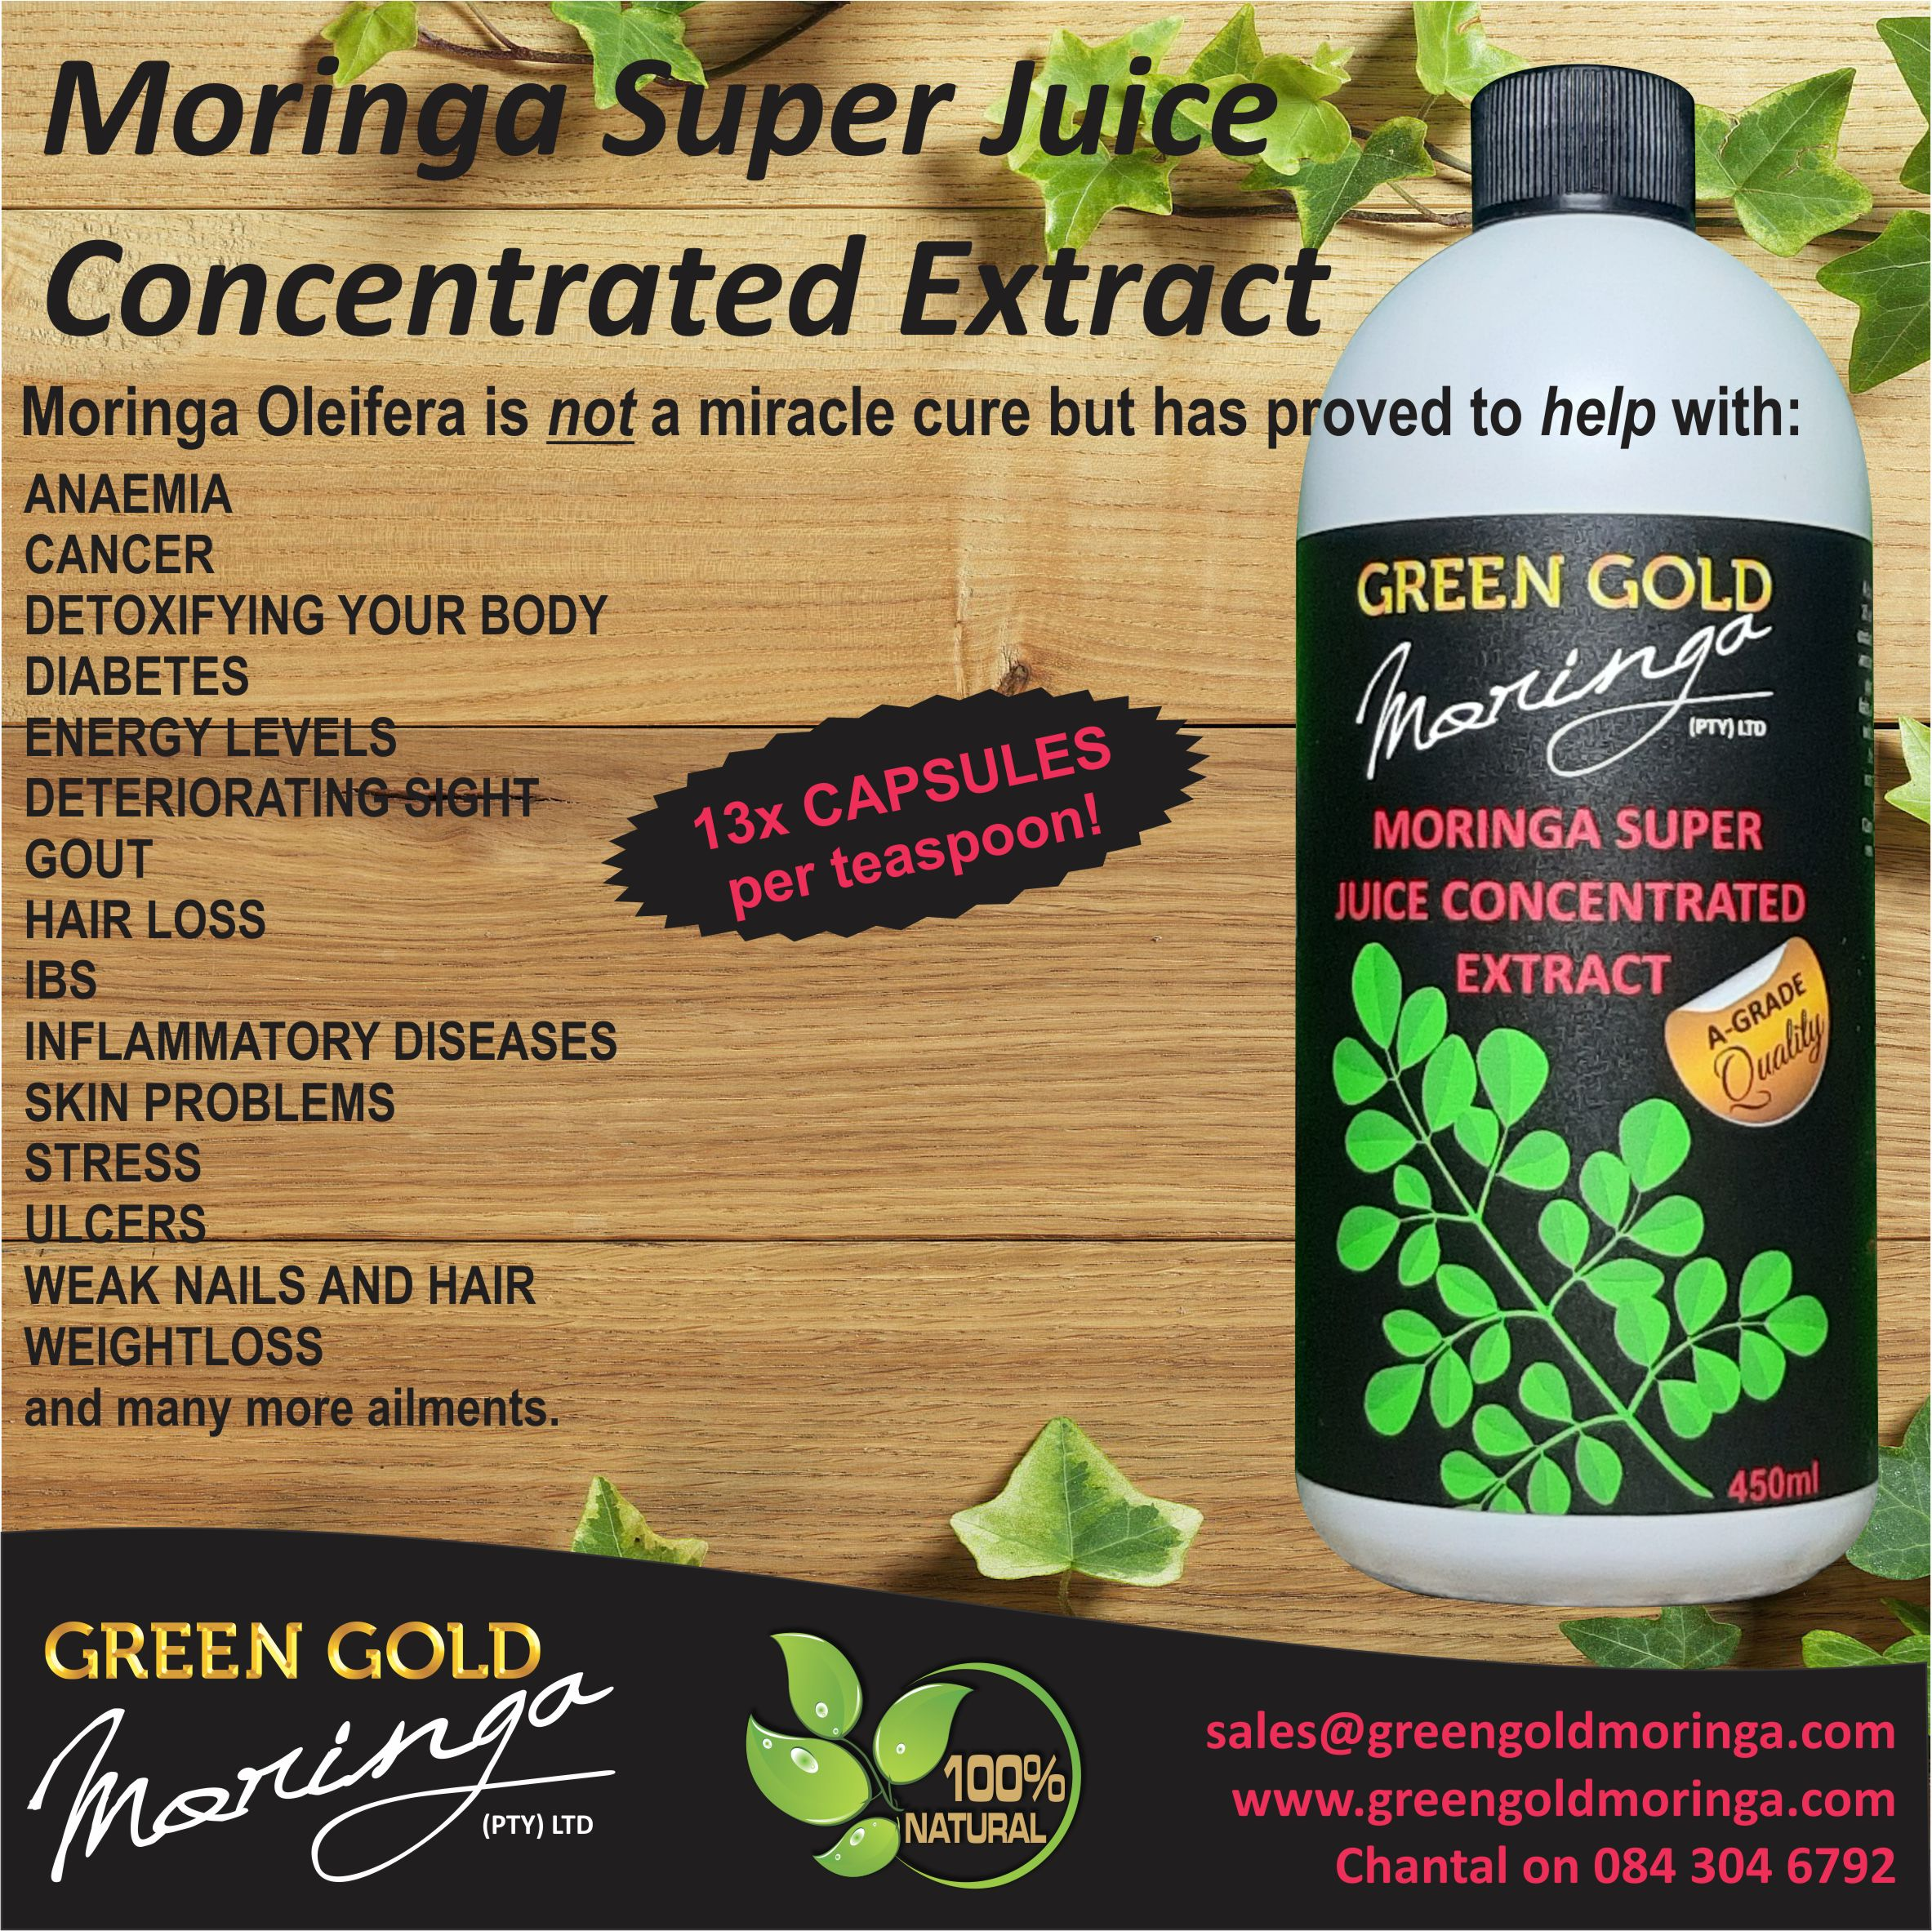 MORINGA SUPER JUICE CONCENTRATED EXTRACT NOW AVAILABLE